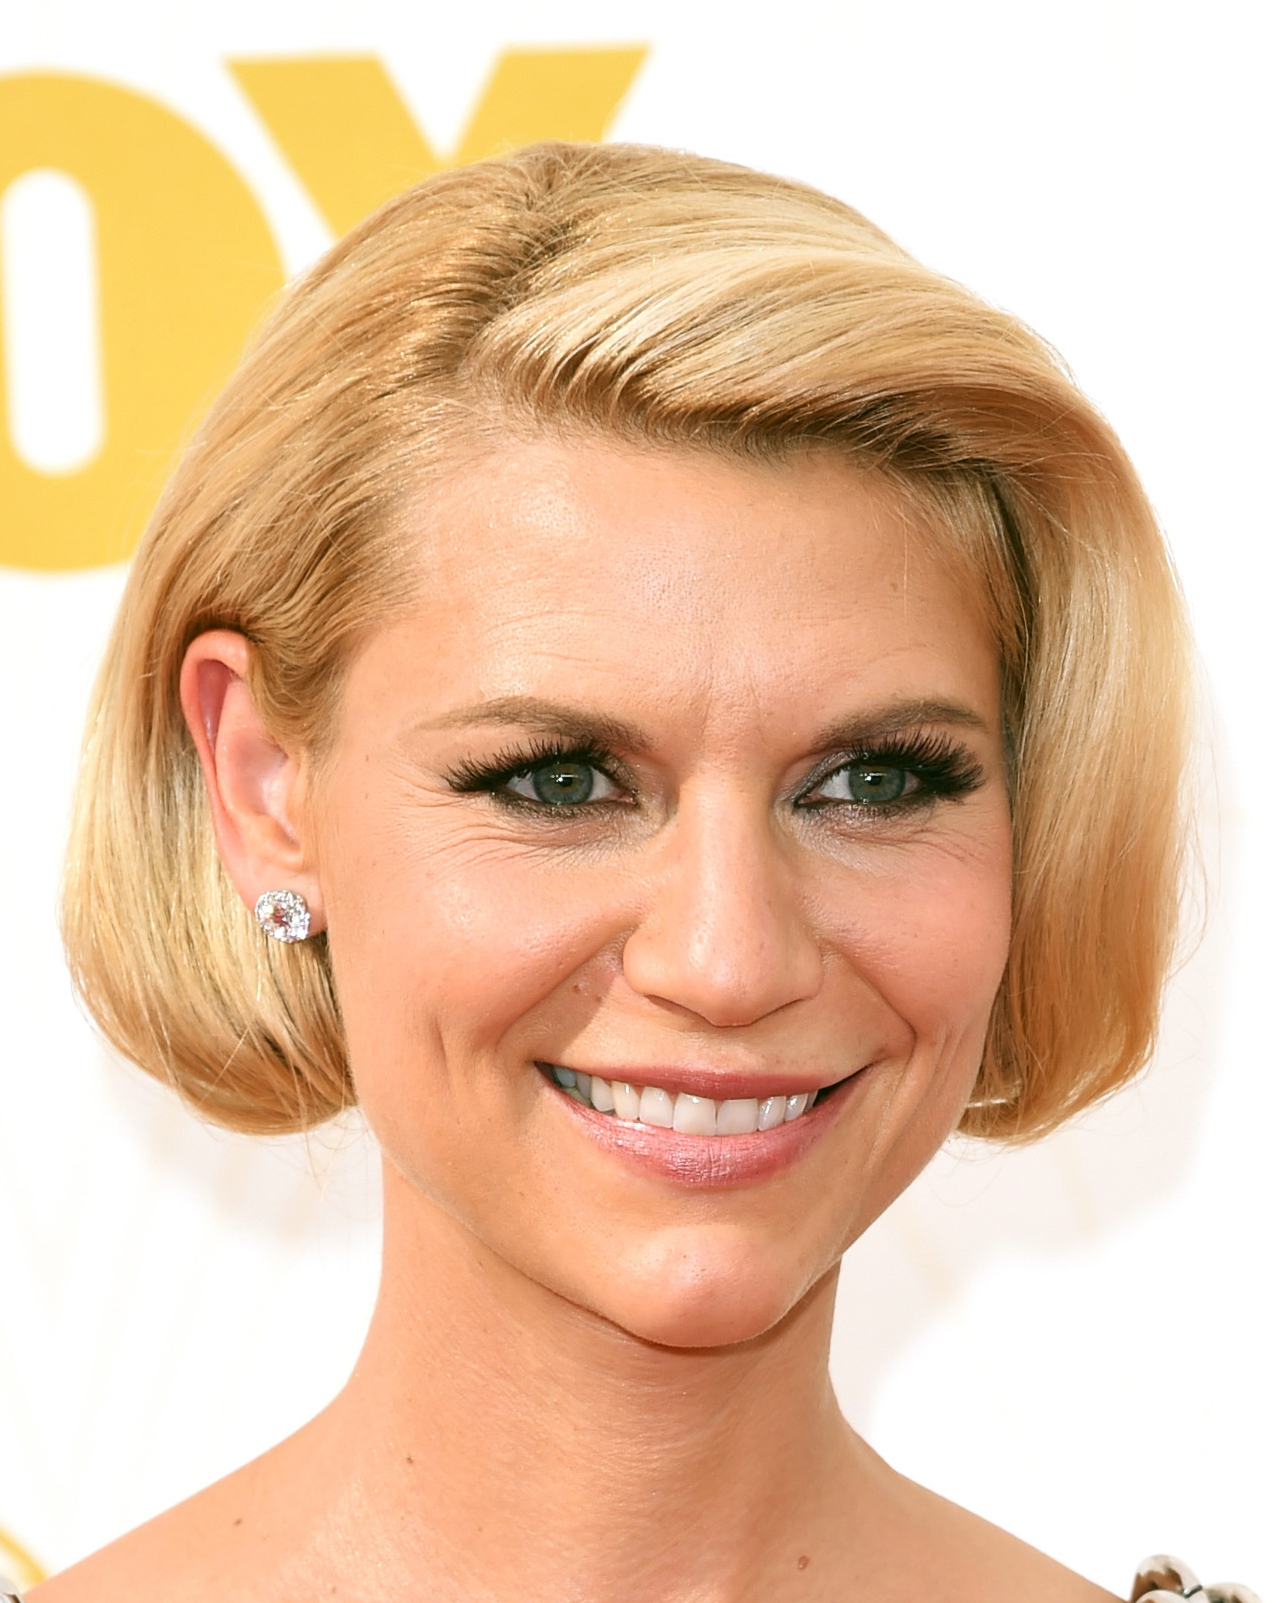 celebrity-wedding-hair-claire-danes-emmys-gettyimages-489372692-0915.jpg